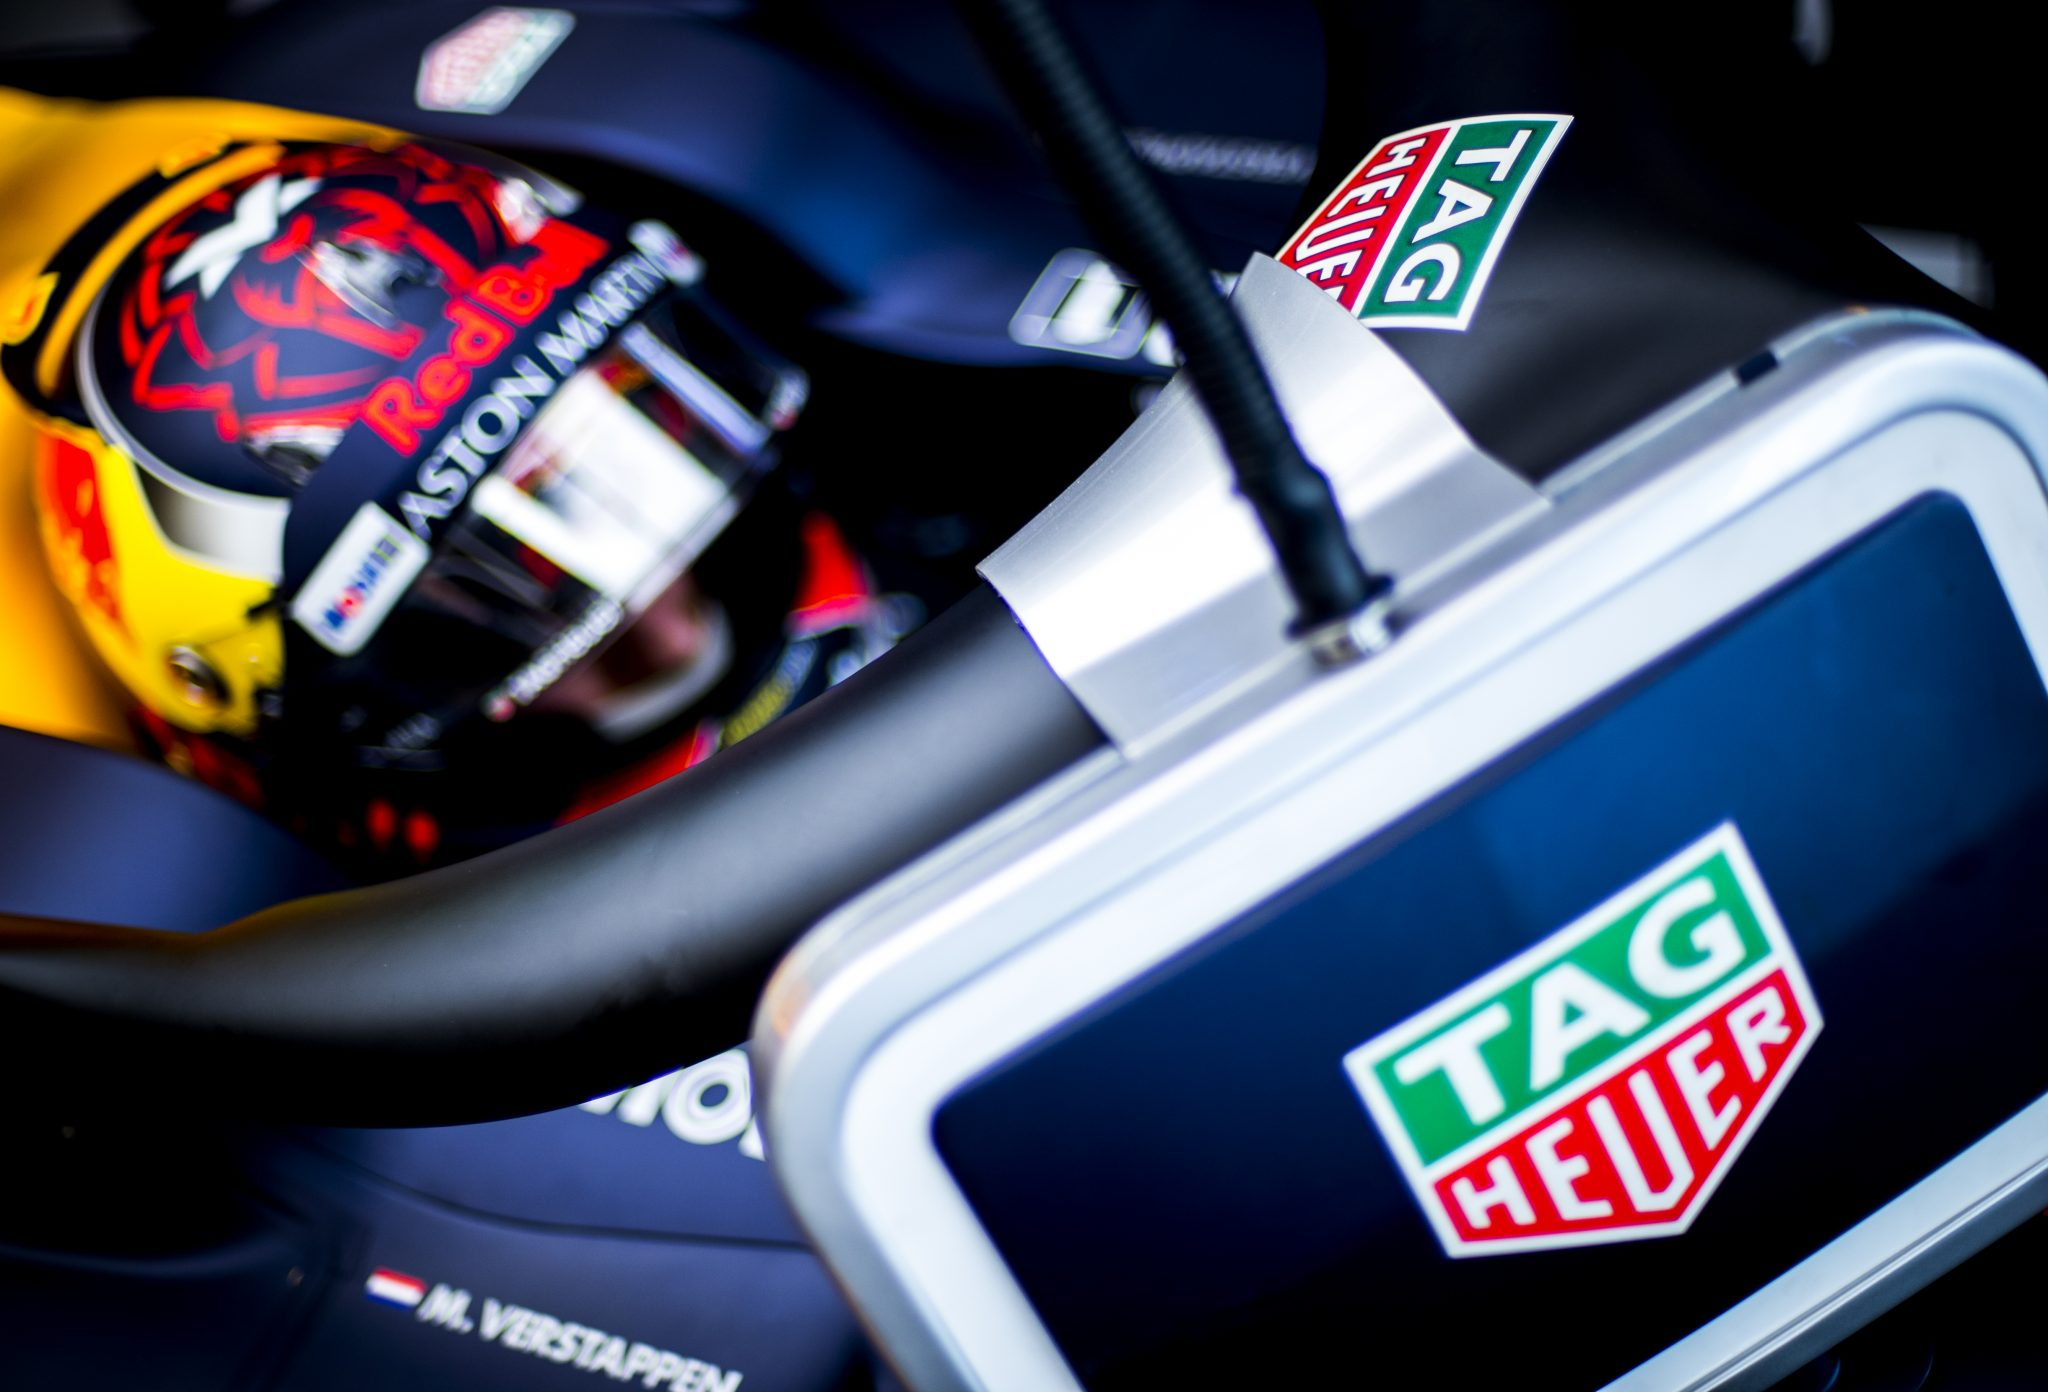 Tag Heuer To Stay Longer With Aston Martin Red Bull Racing Formula 1 Team Luxuvere